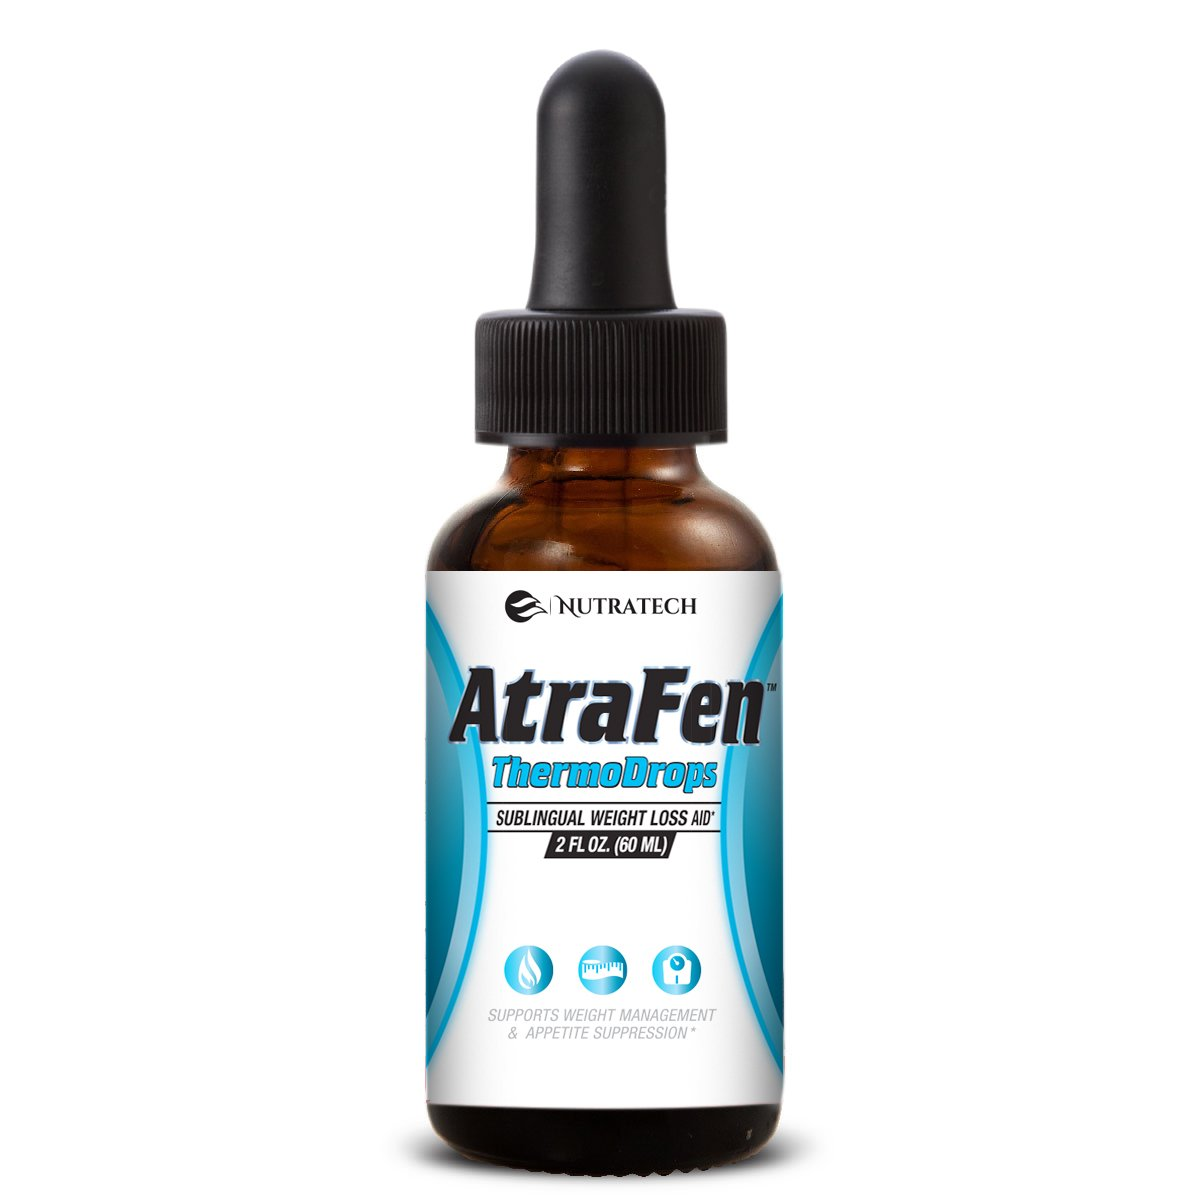 Nutratech Atrafen Thermodrops - Powerful Sublingual Diet Drops and Fat Burner Provides Fast Acting Appetite Suppression and Weight Loss.